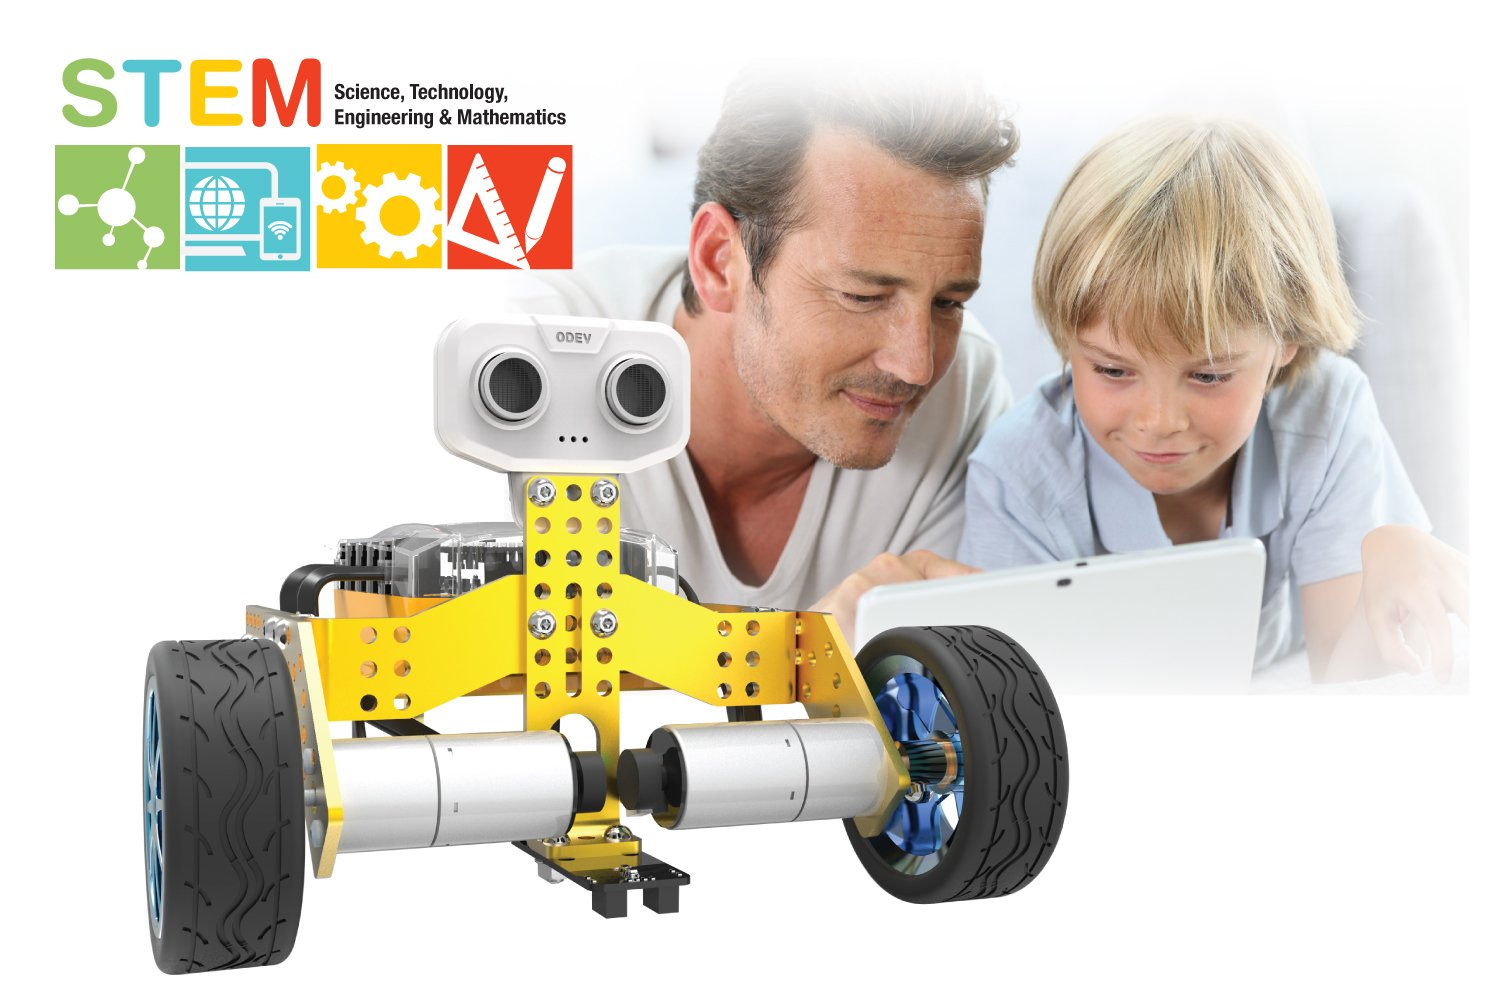 Tenergy ODEV Tomo STEM Robot 2-in-1 DIY Robot Kit Transformable and Programmable APP Controlled Robot Building Kit for Kids Age 8+ Bonus Batteries Included